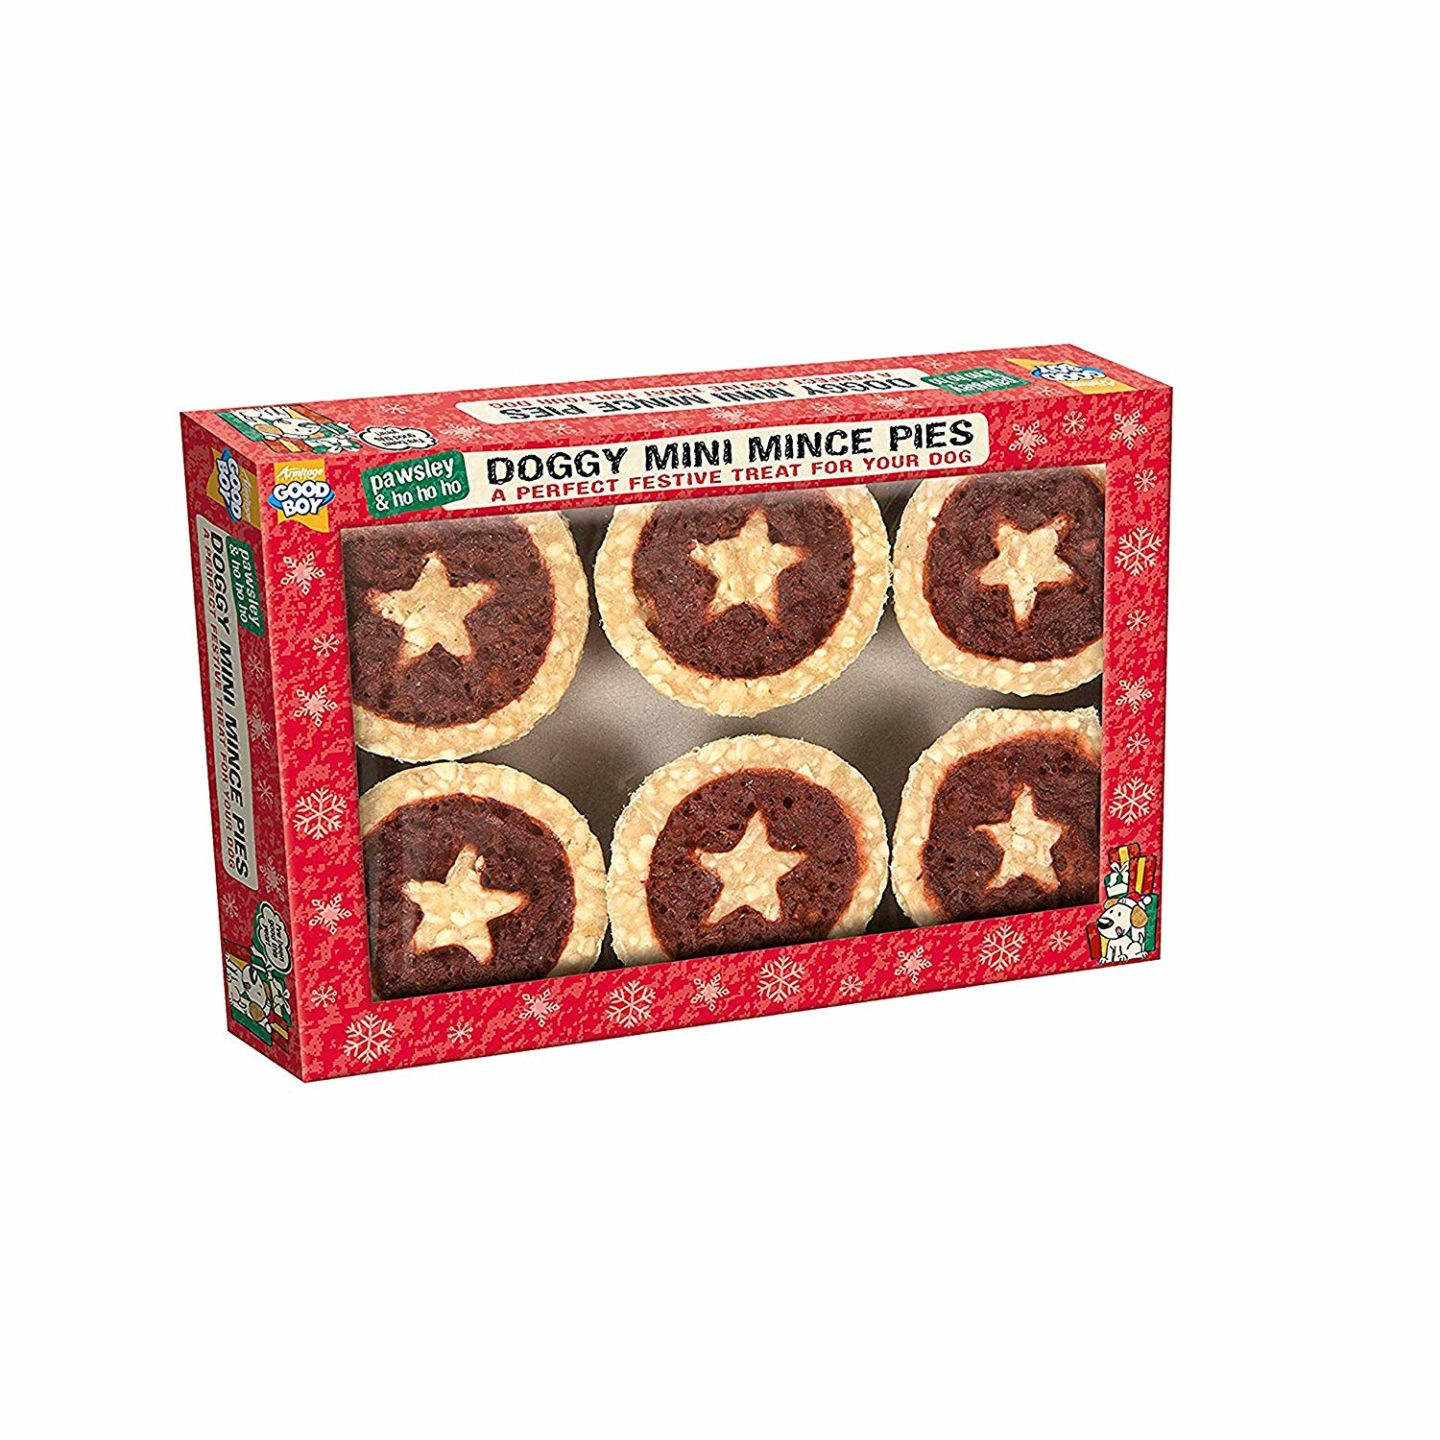 AD: Ideas for Christmas gifts for pets - doggy mince pies